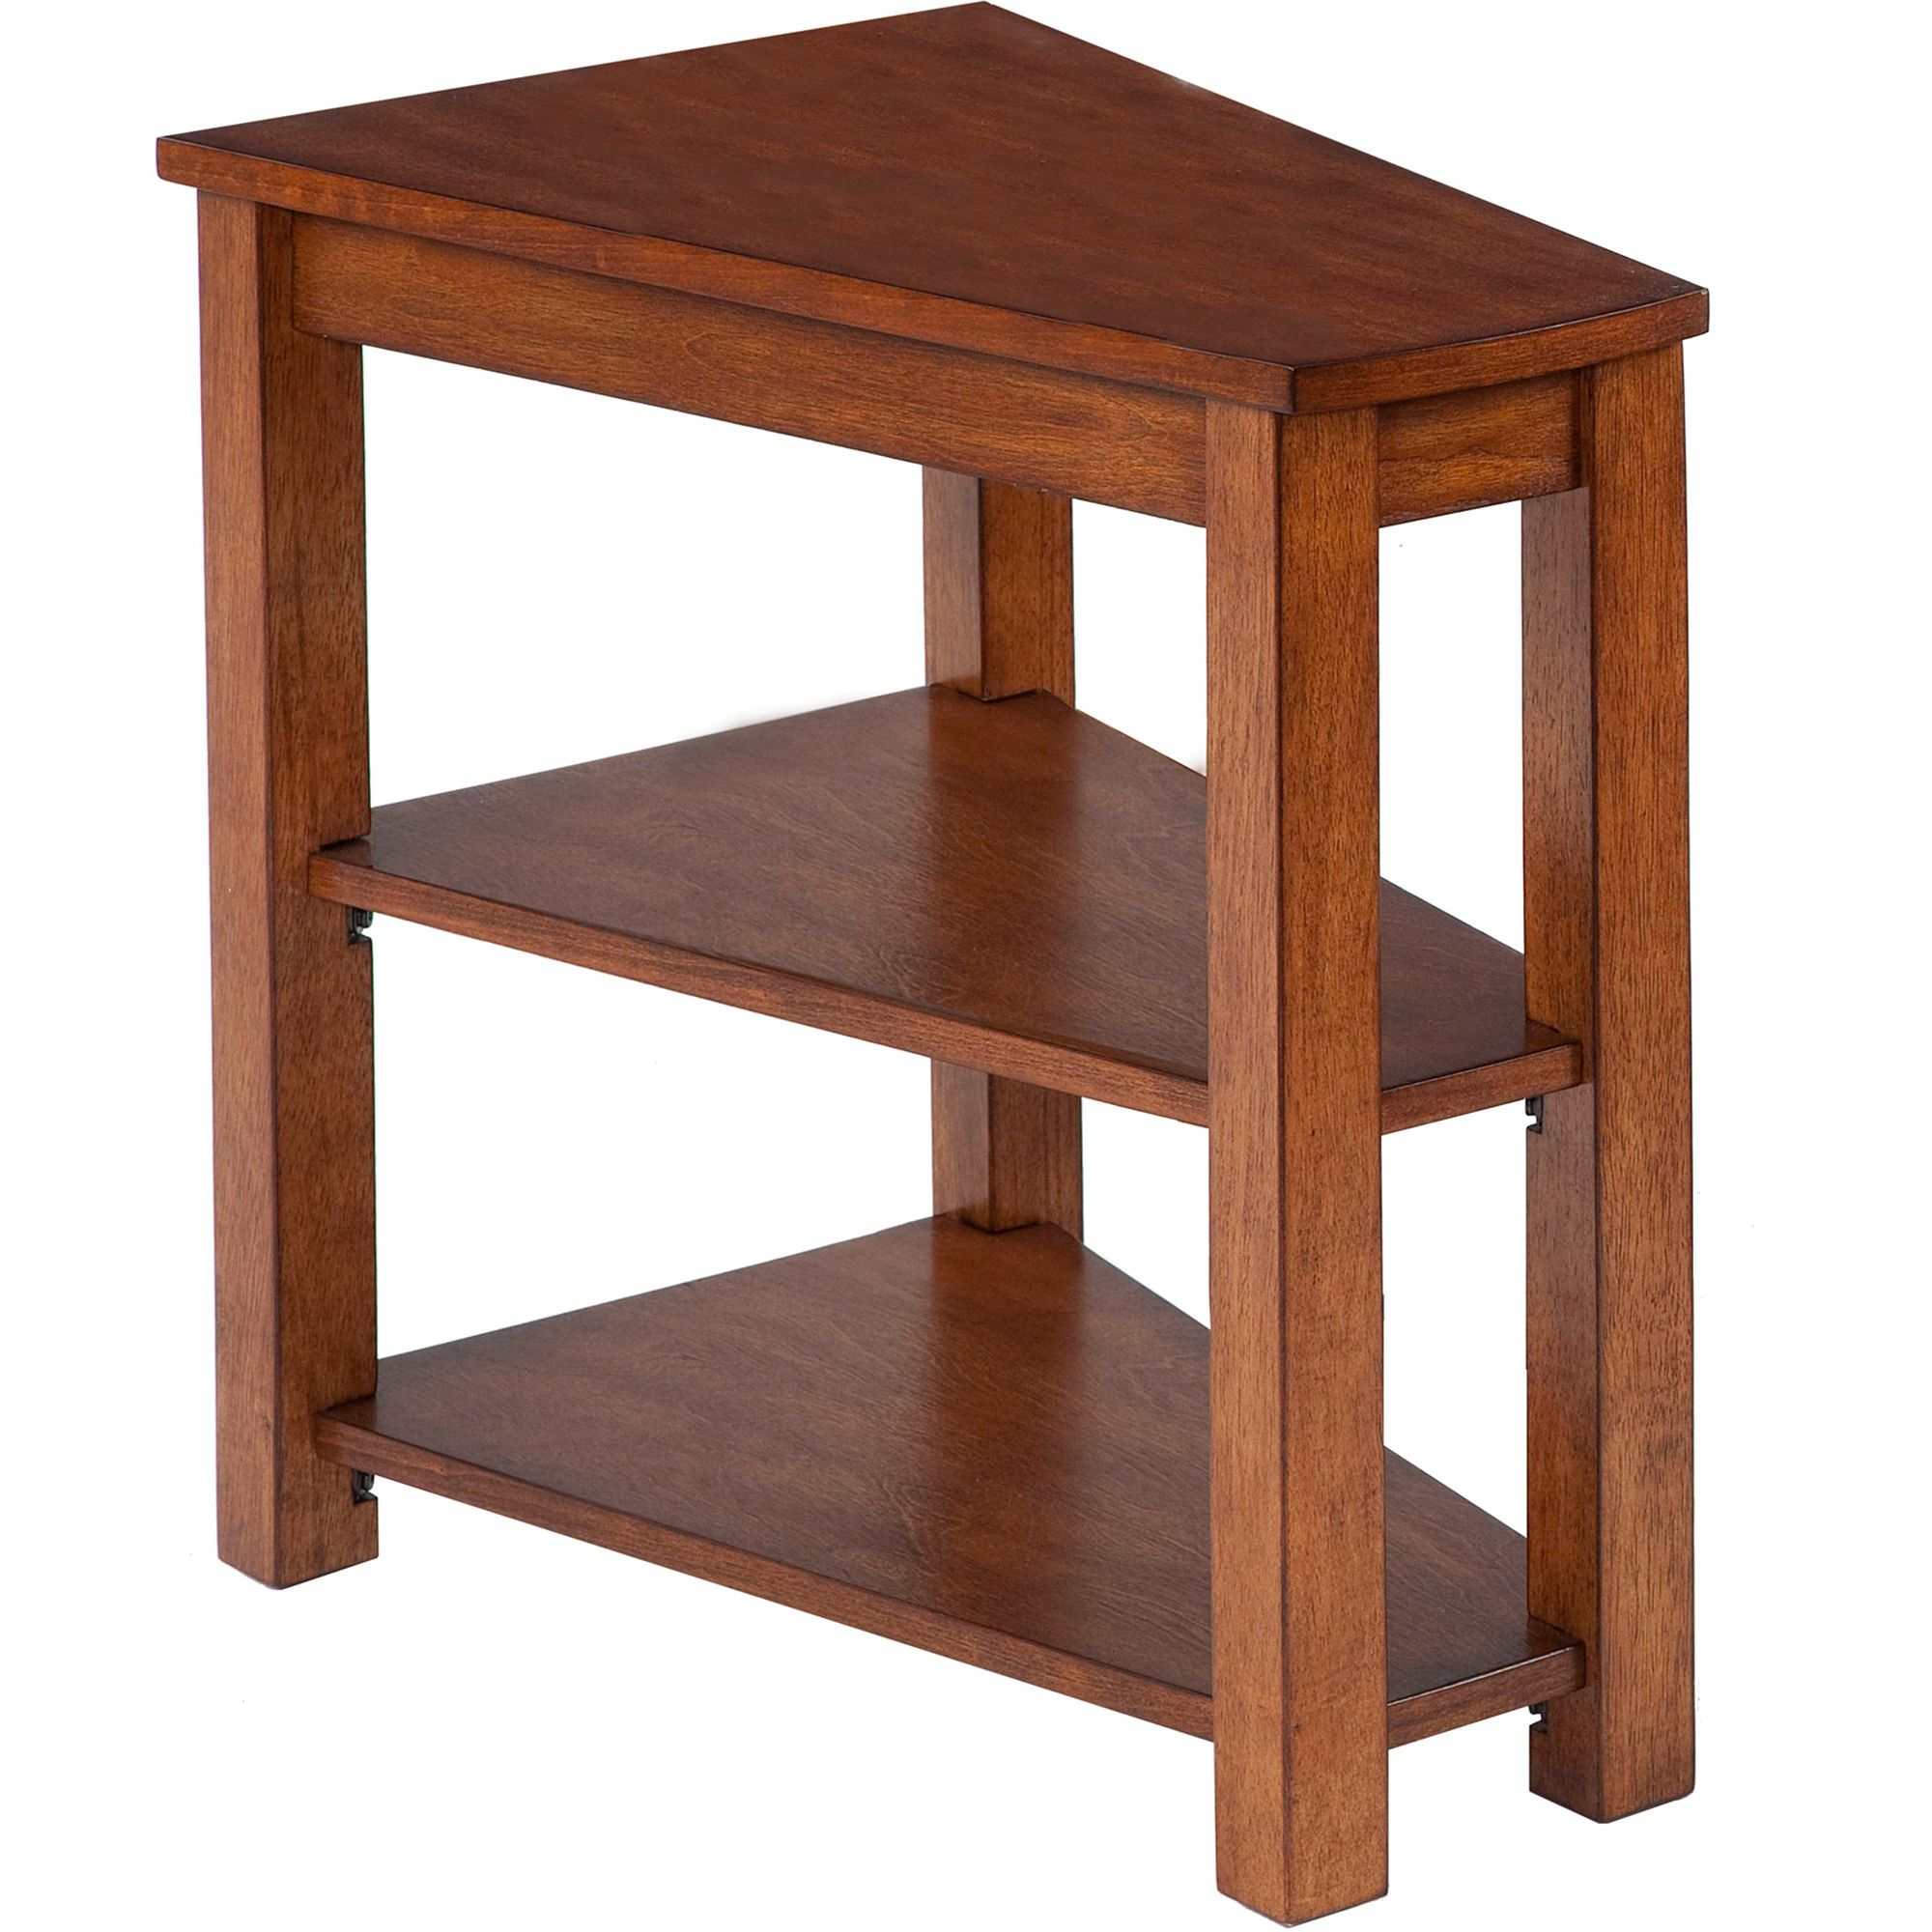 Best Chairside Table With Shelf In Brown Progressive 400 x 300